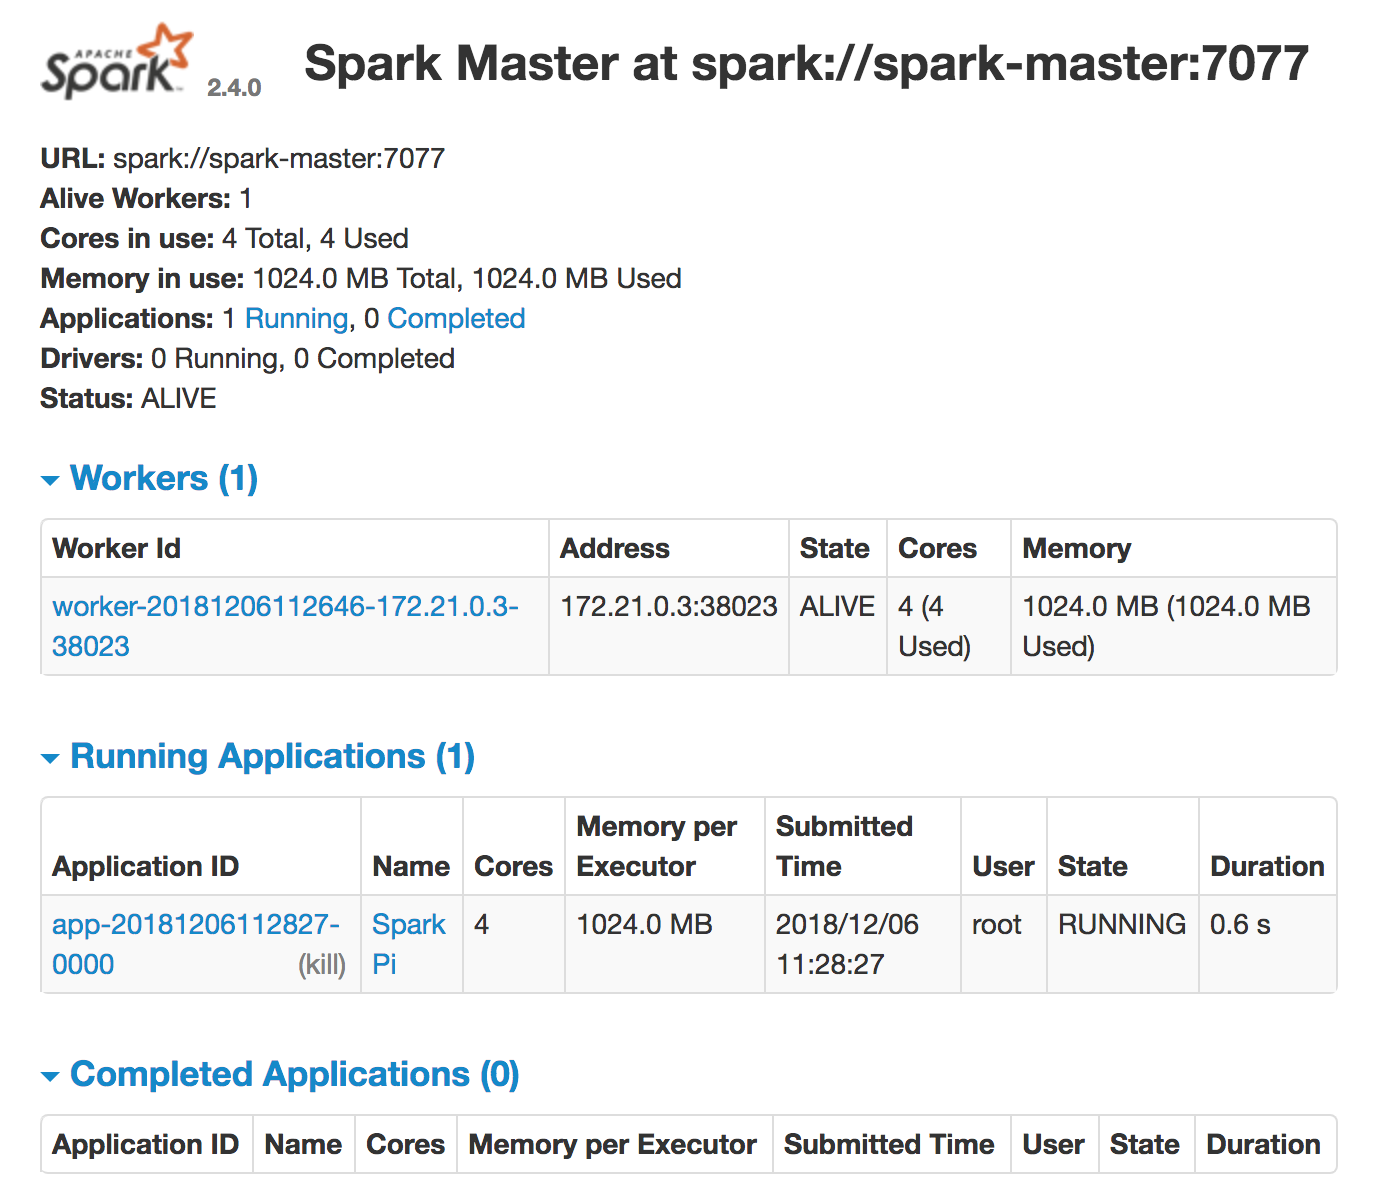 A Journey Into Big Data with Apache Spark: Part 1 - Towards Data Science